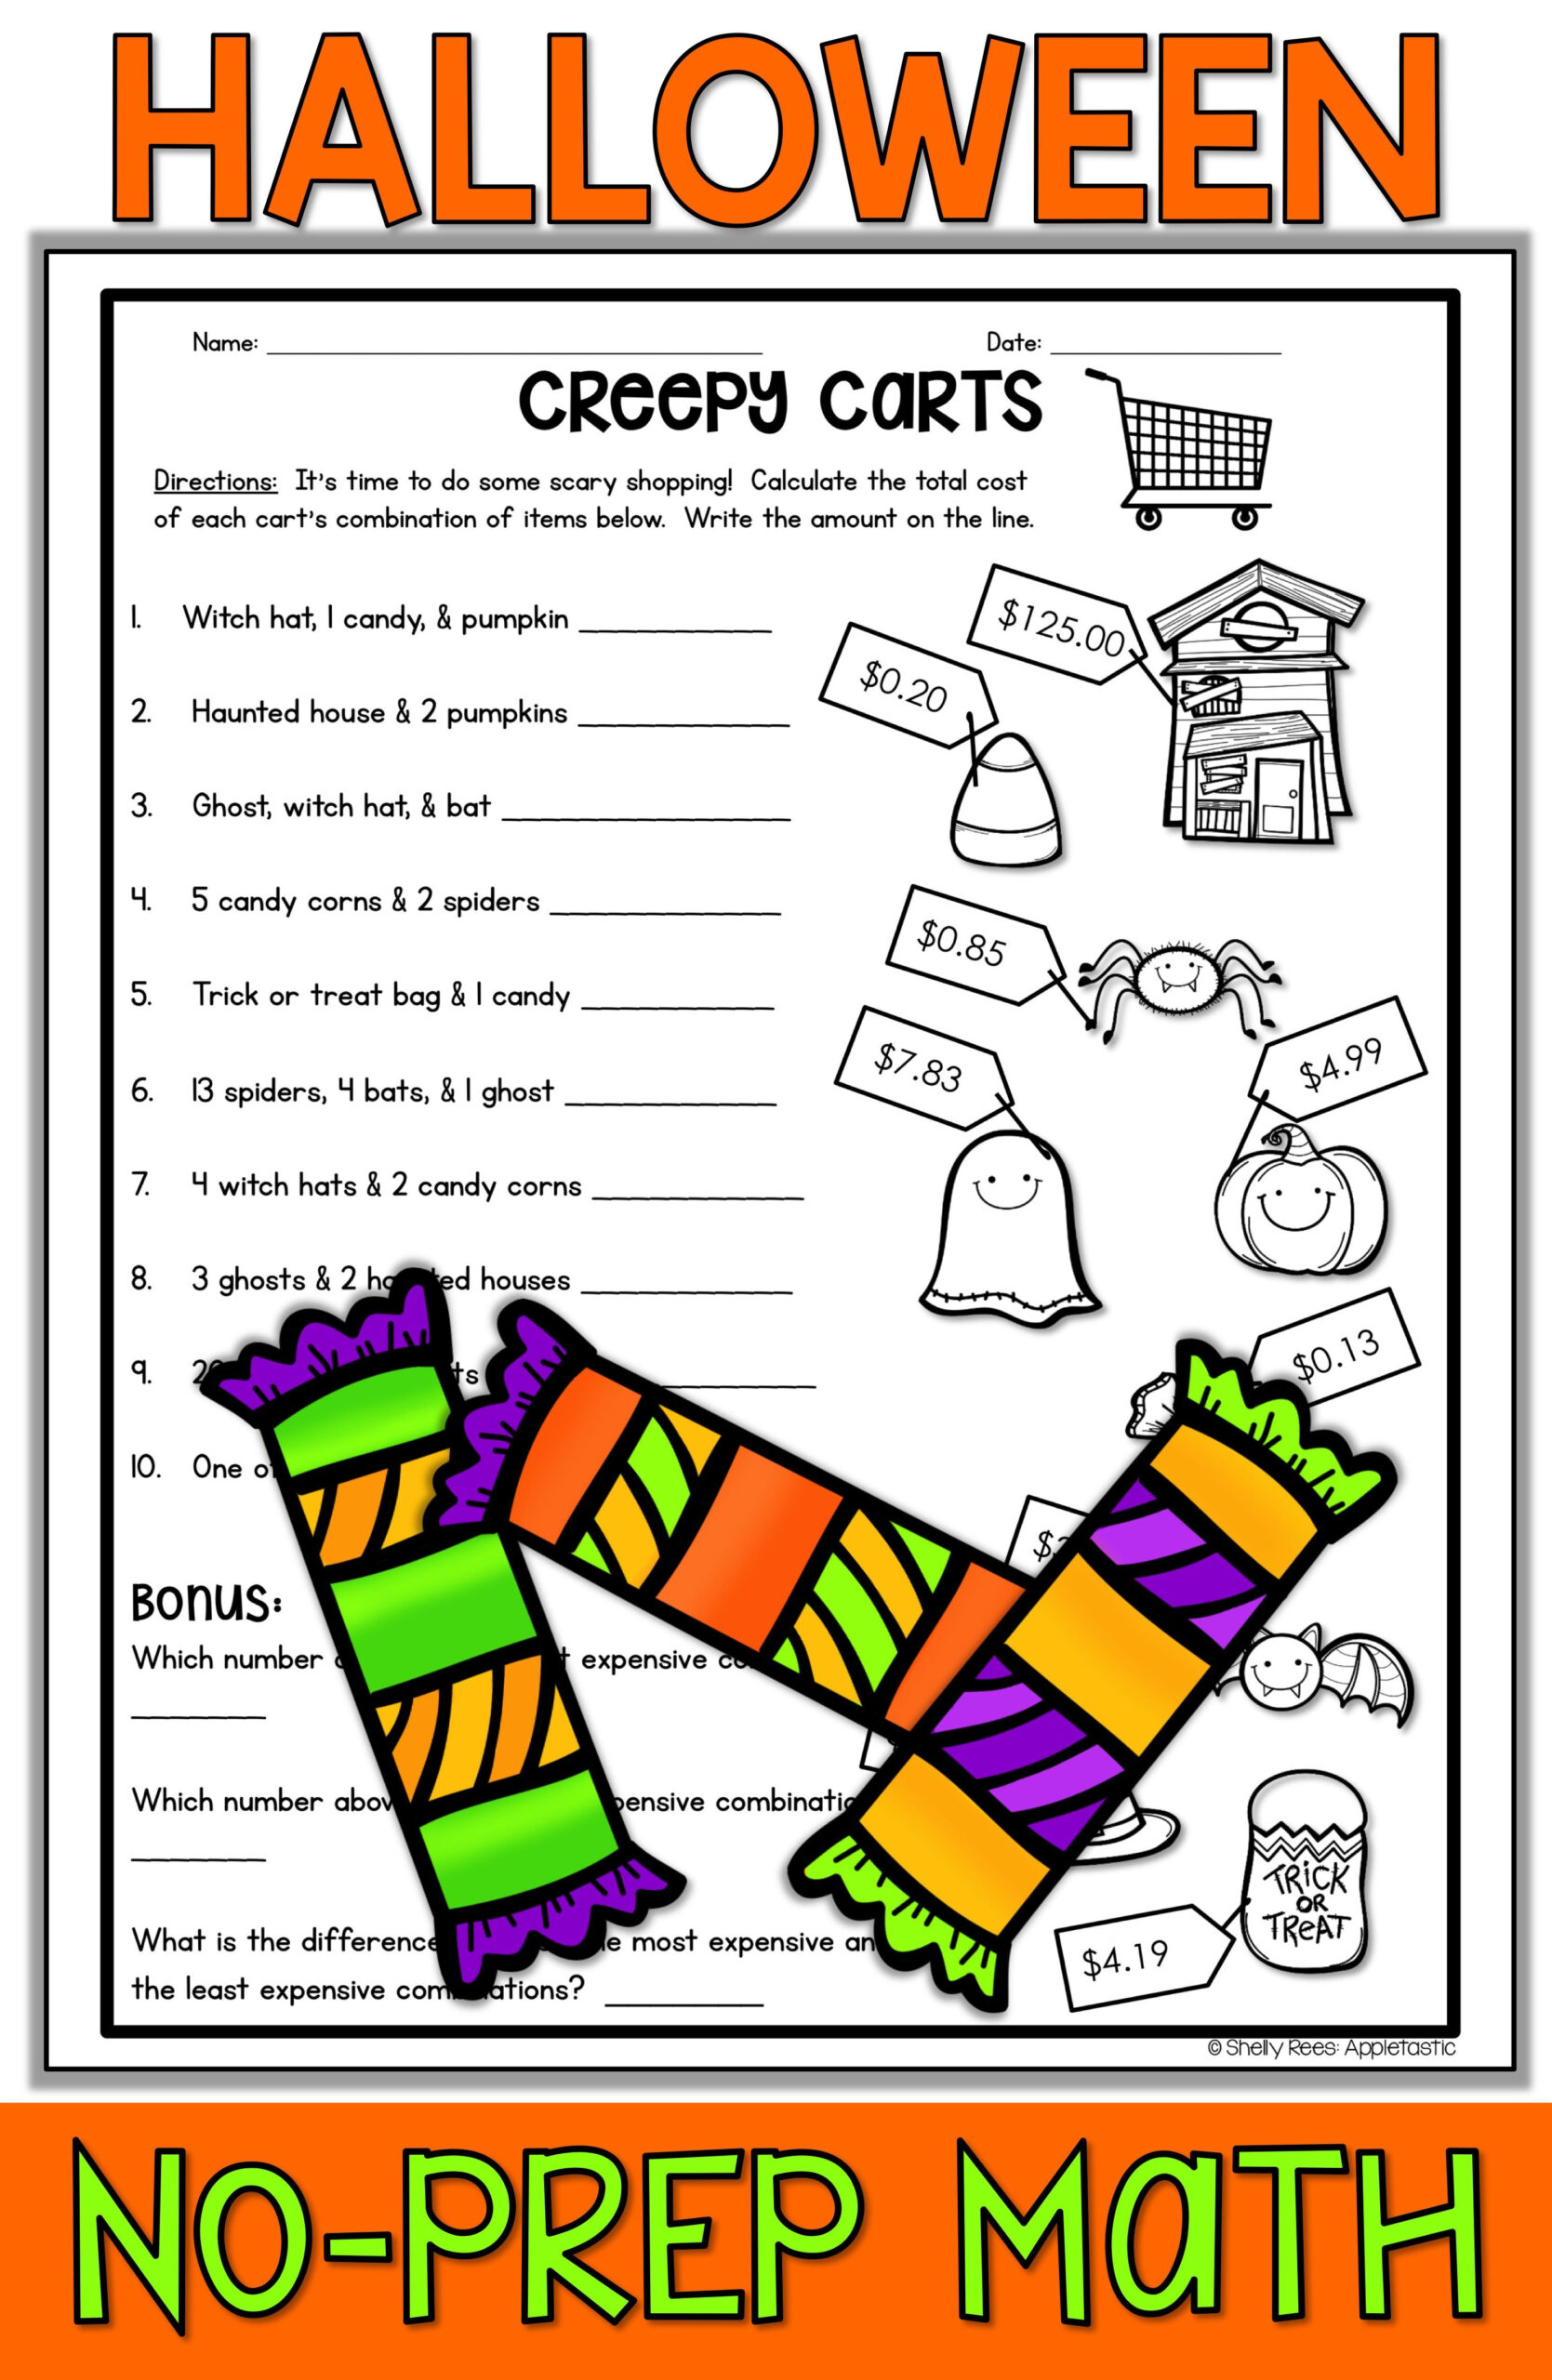 Halloween Science Worksheets For High School